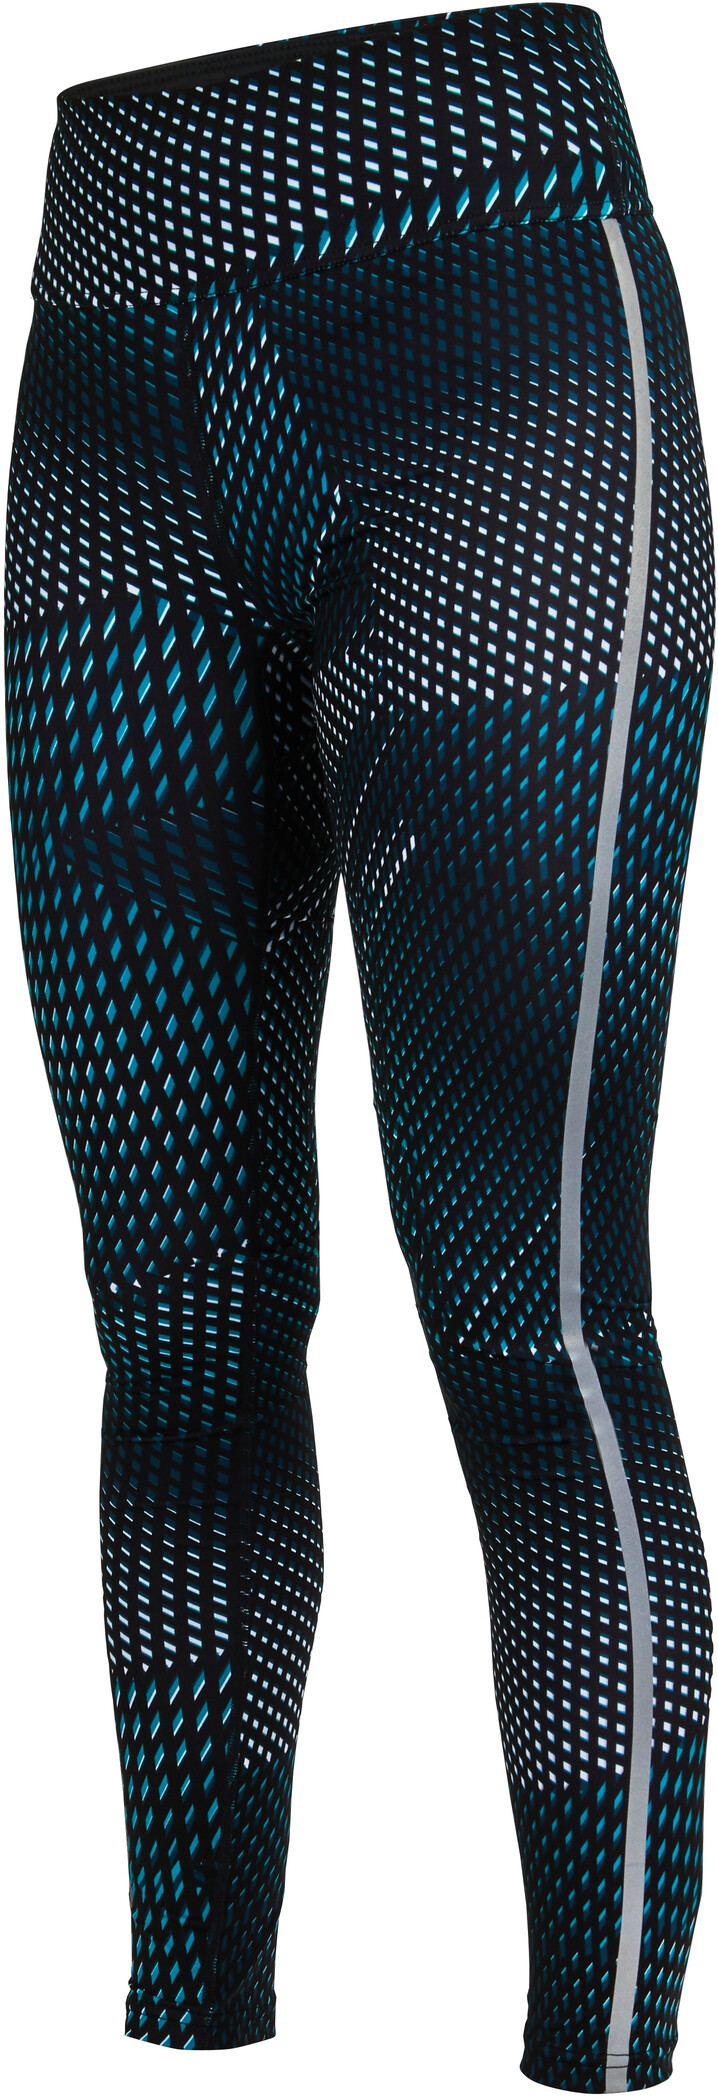 Salming Split Tights Damer, deep teal all over print (2019) | Trousers